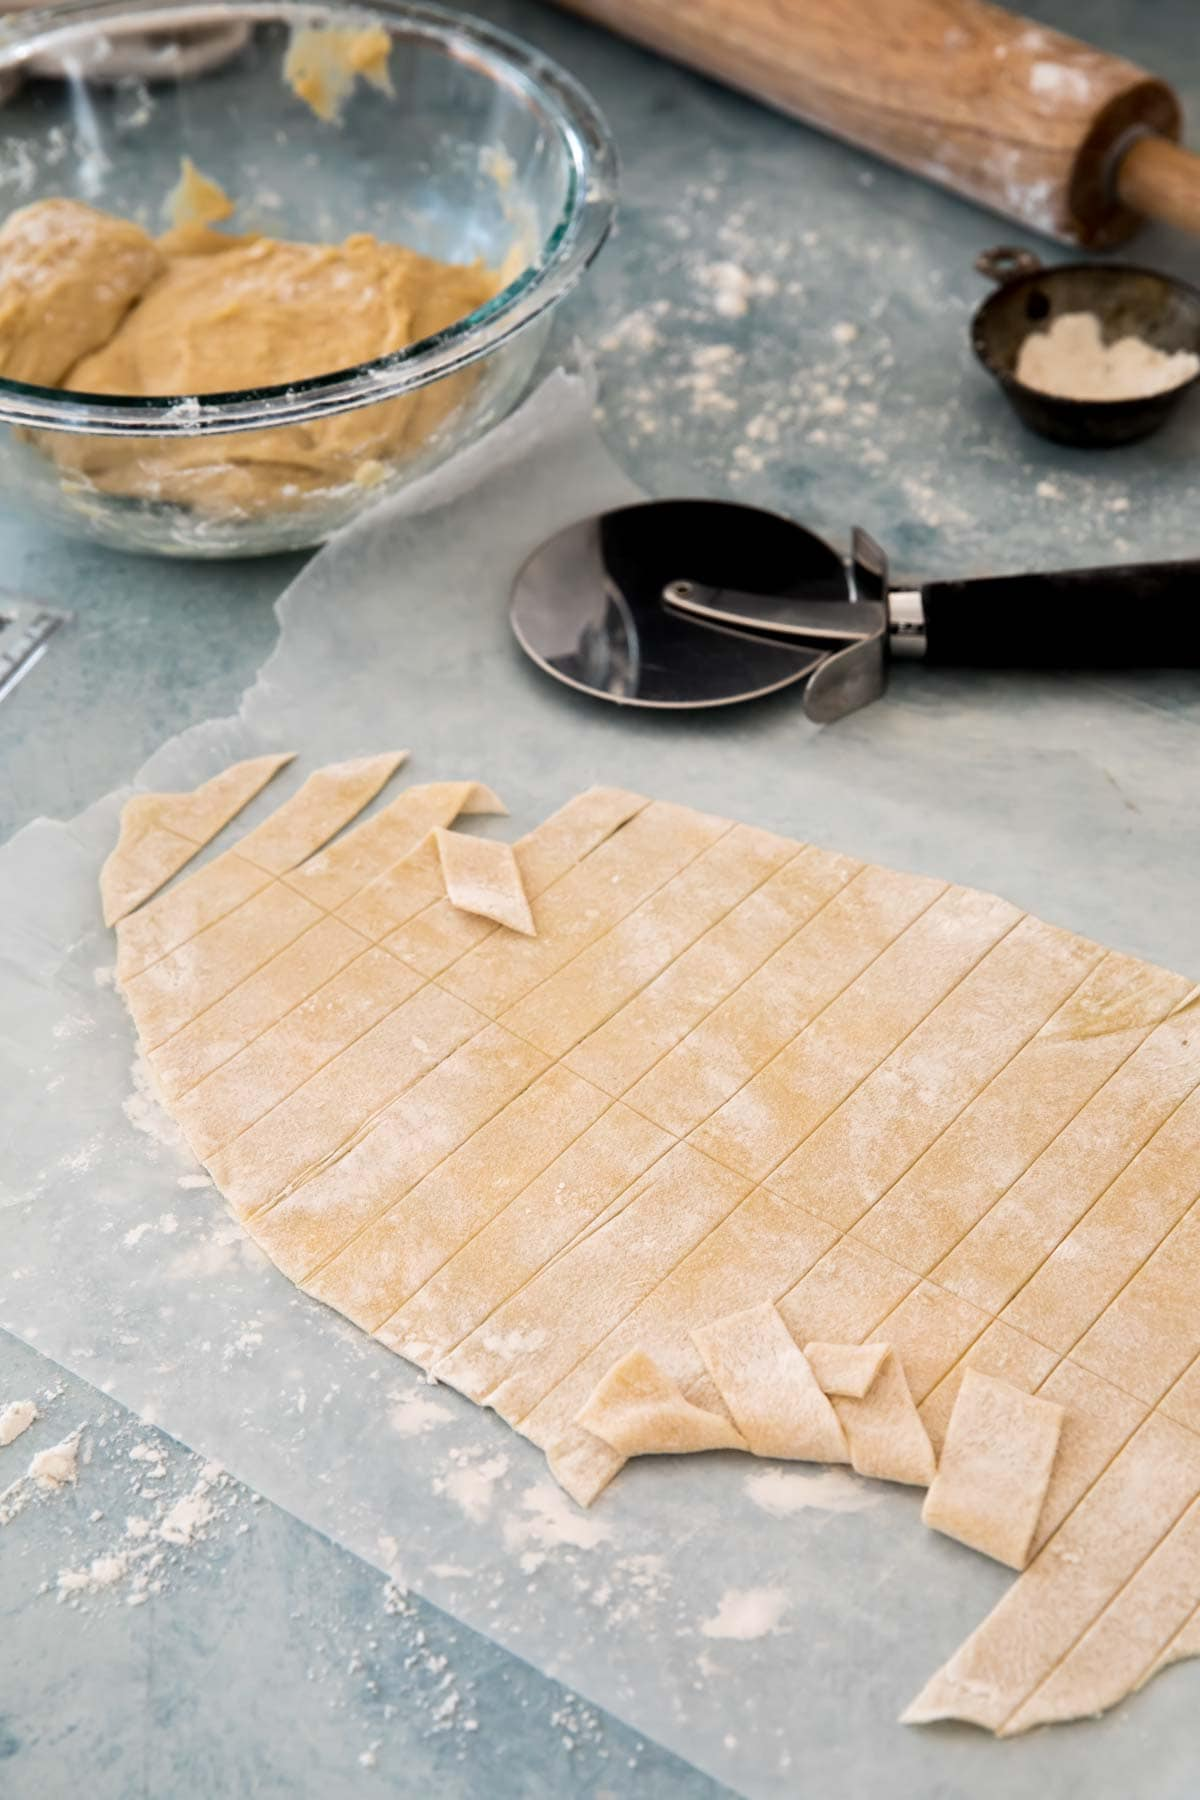 Dough rolled paper thin and cut into strips. pizza cutter, rolling pin, flour, and glass bowl with more dough in background